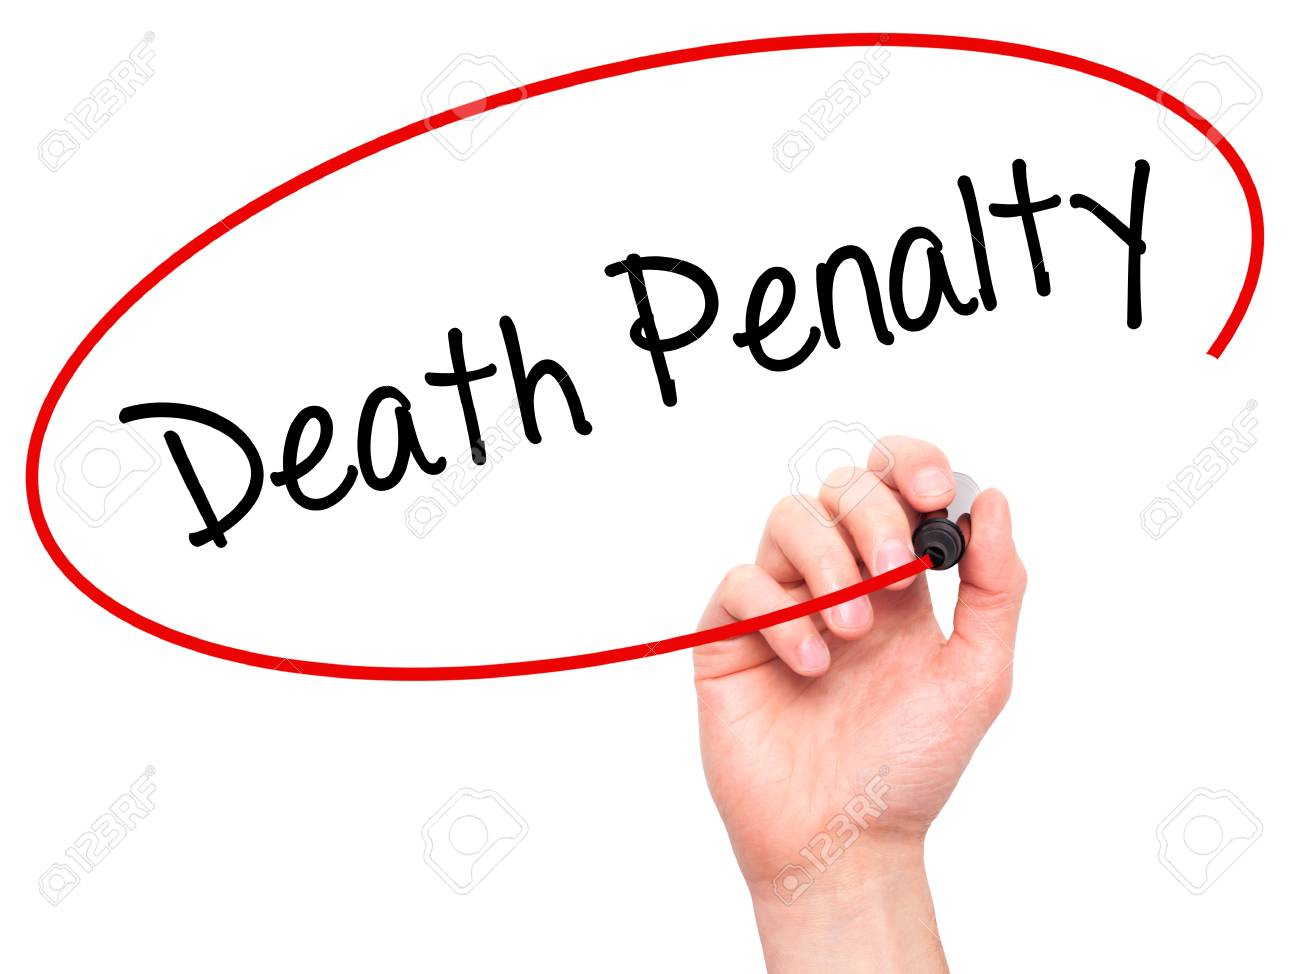 Death penalty writing